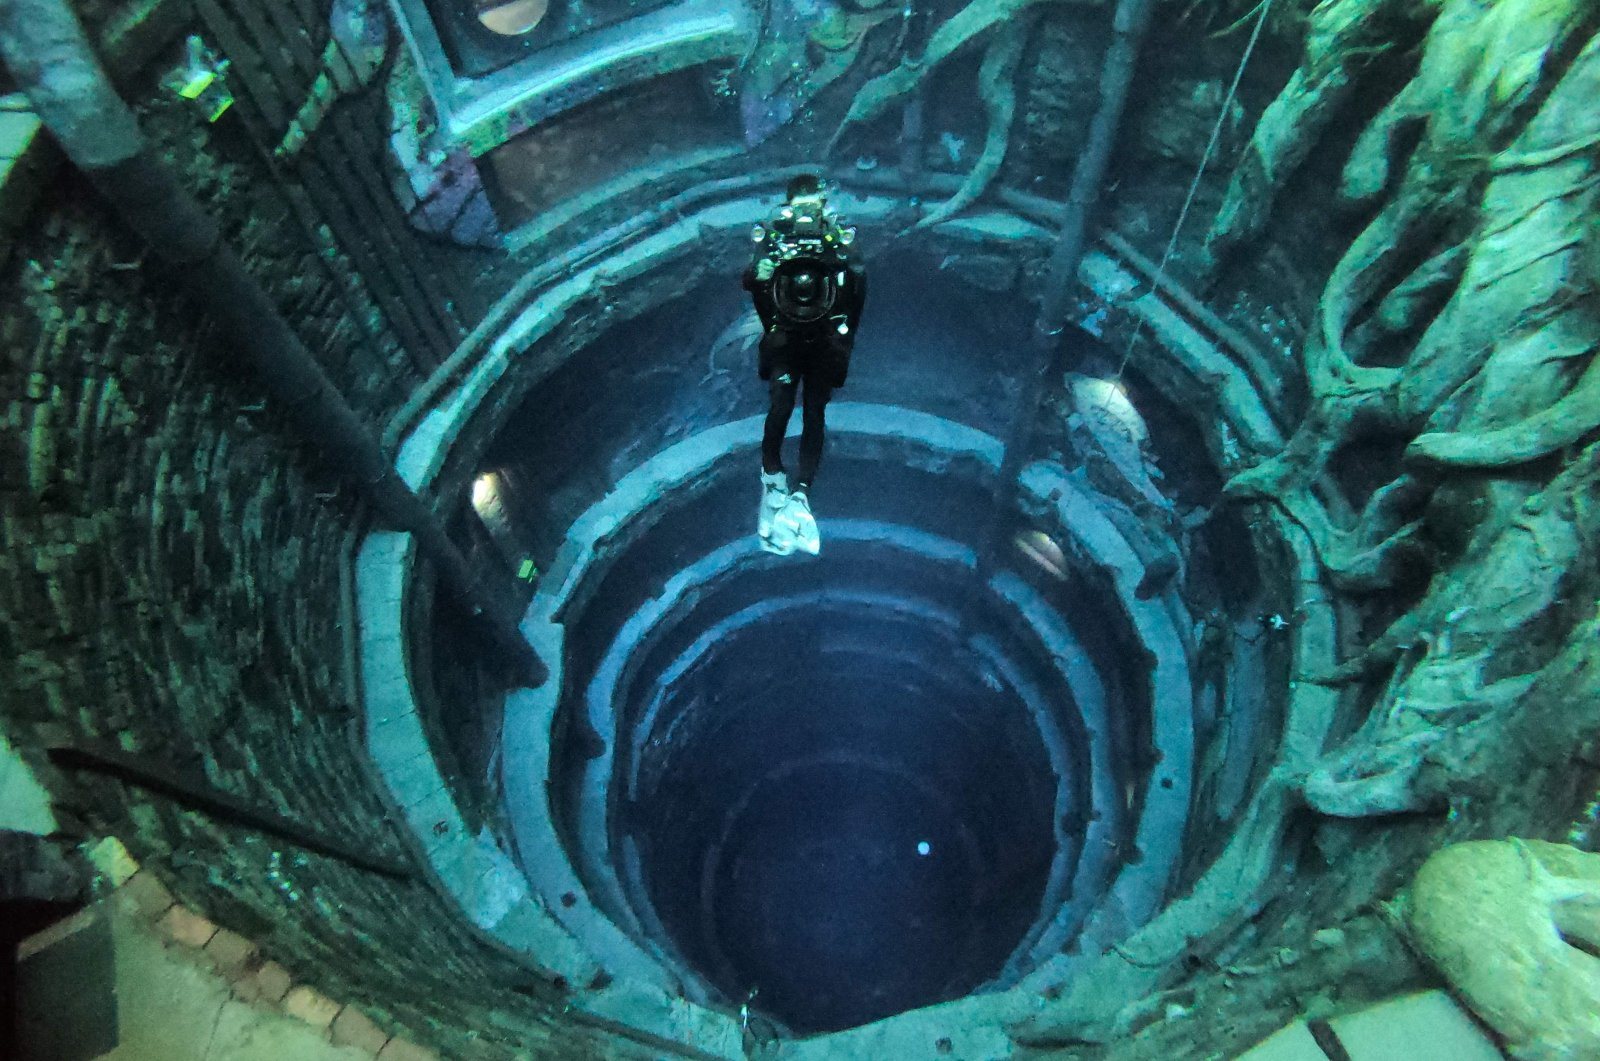 A diver experiences Deep Dive Dubai, the deepest swimming pool in the world reaching 60 meters (nearly 200 feet), in the United Arab Emirates, July 10, 2021. (AFP Photo)